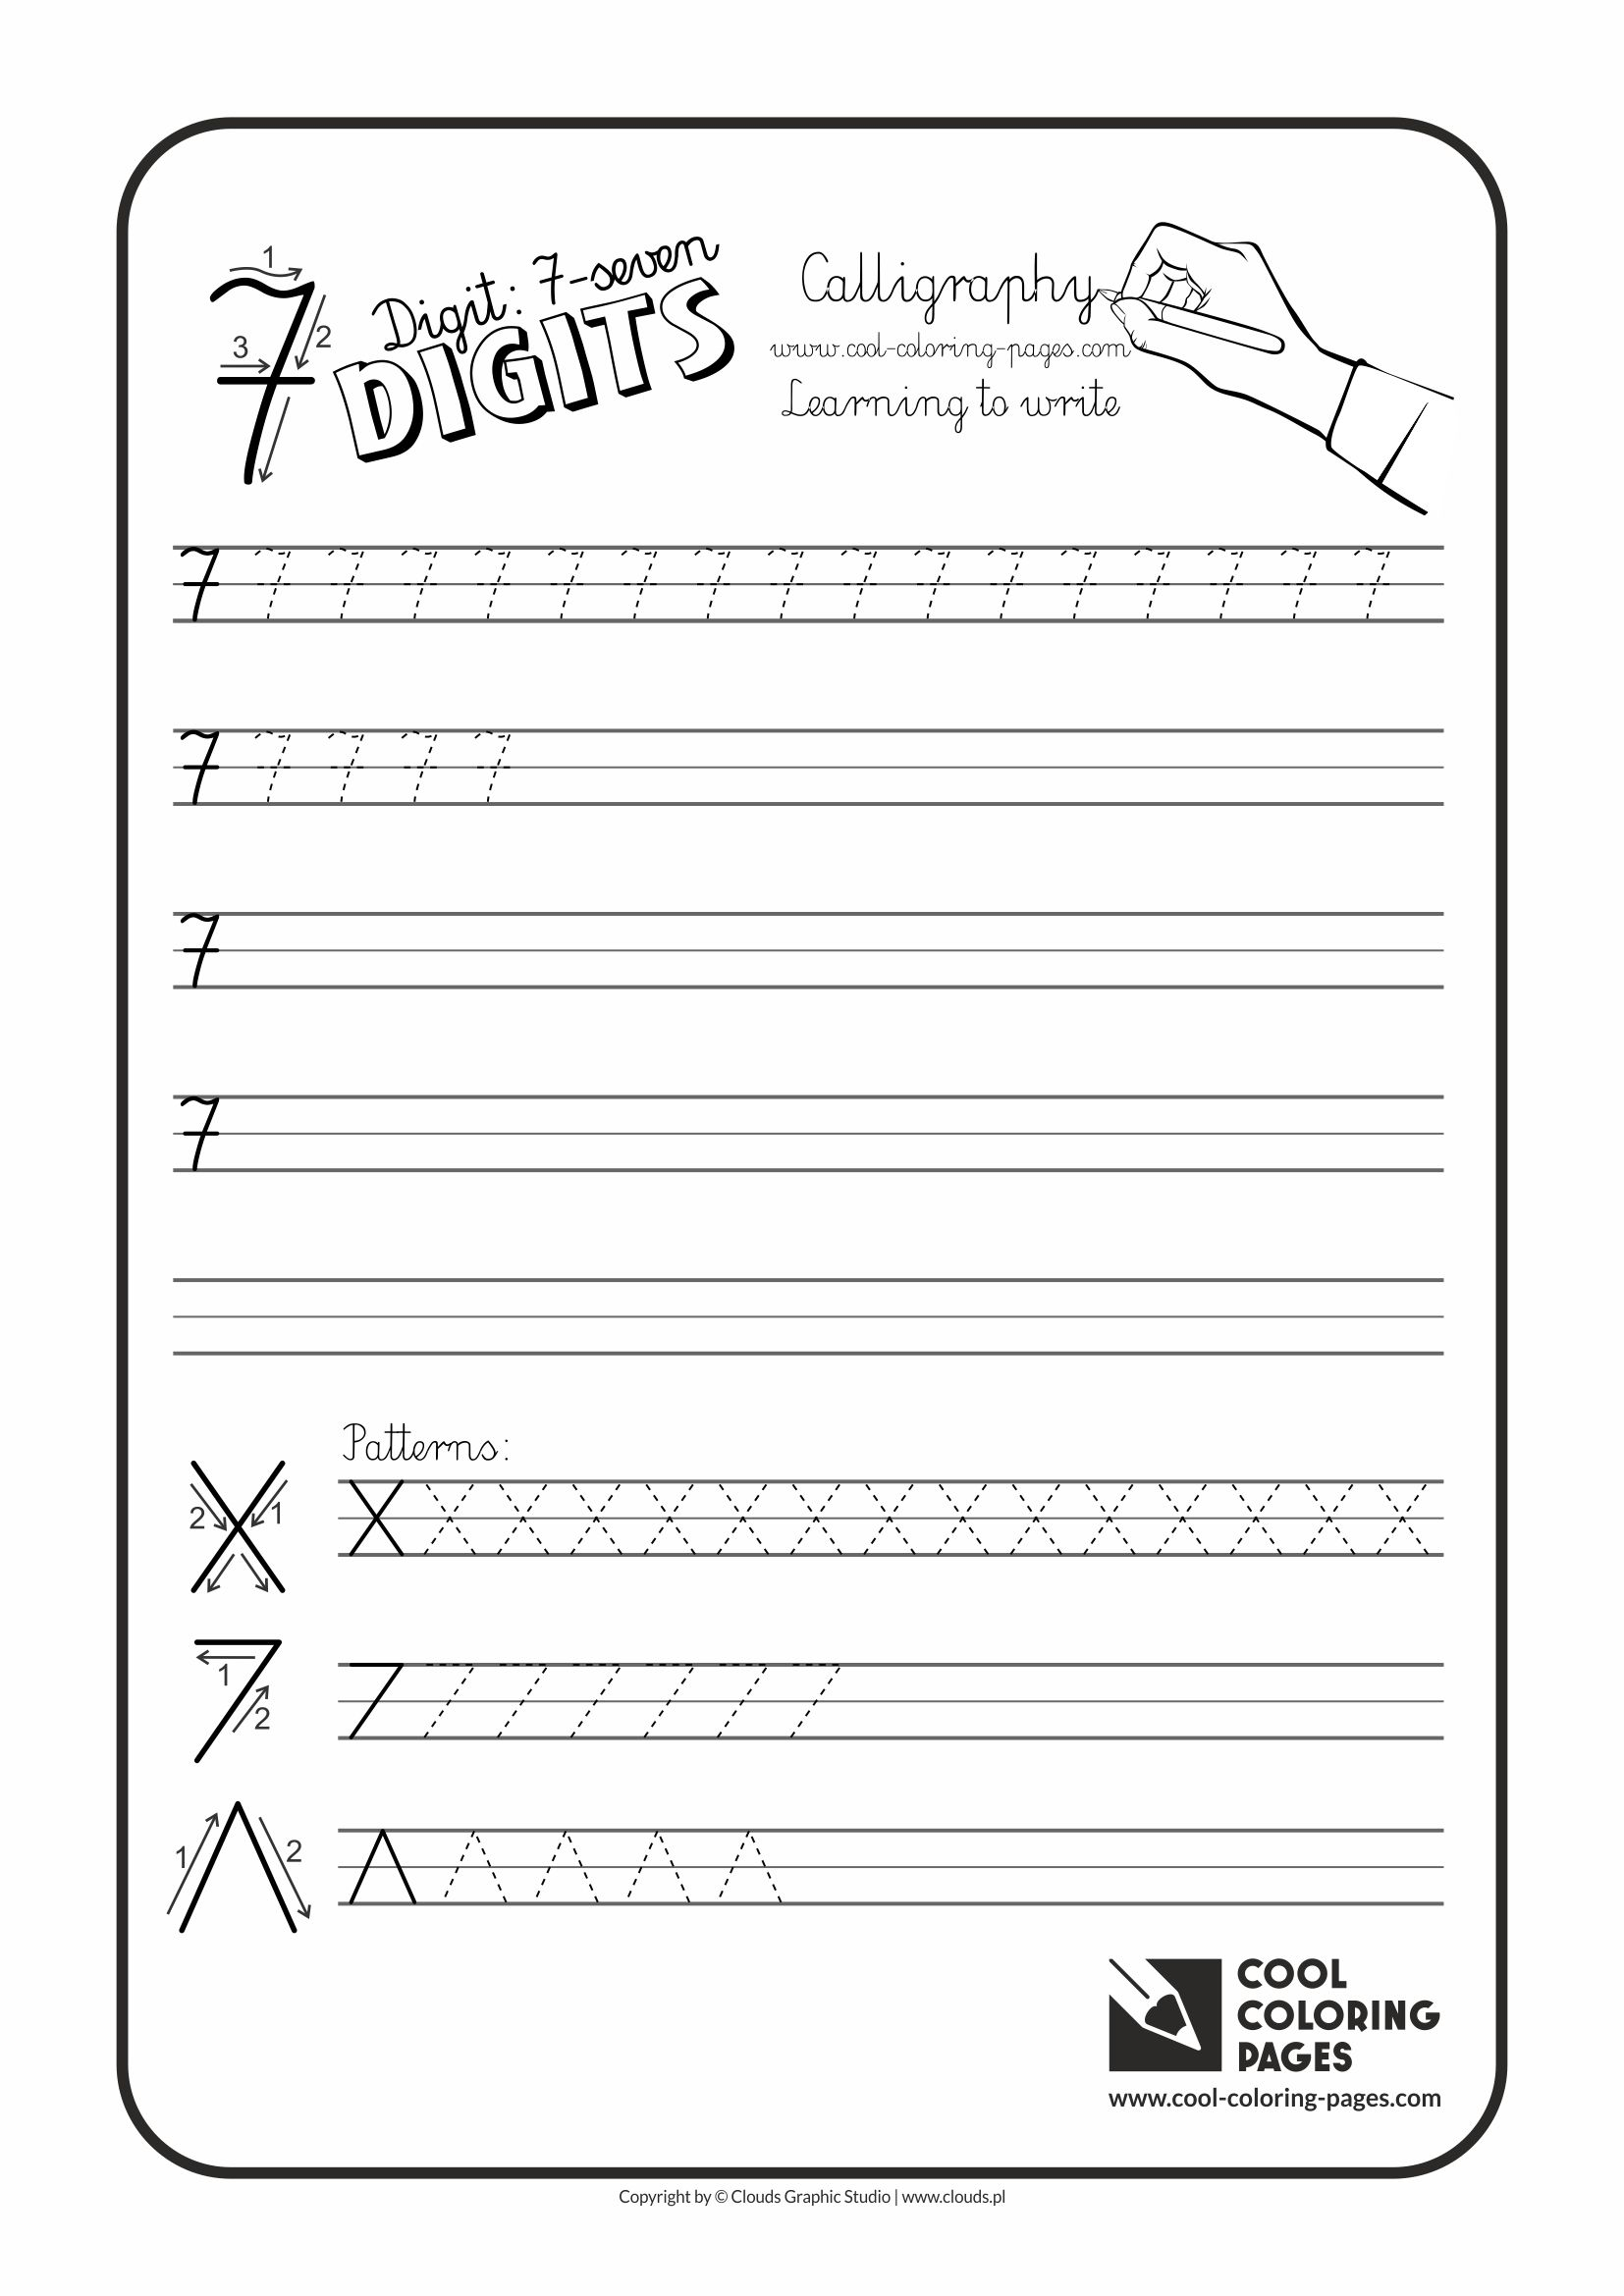 Cool Coloring Pages / Calligraphy / Digit 7 / Handwriting for kids